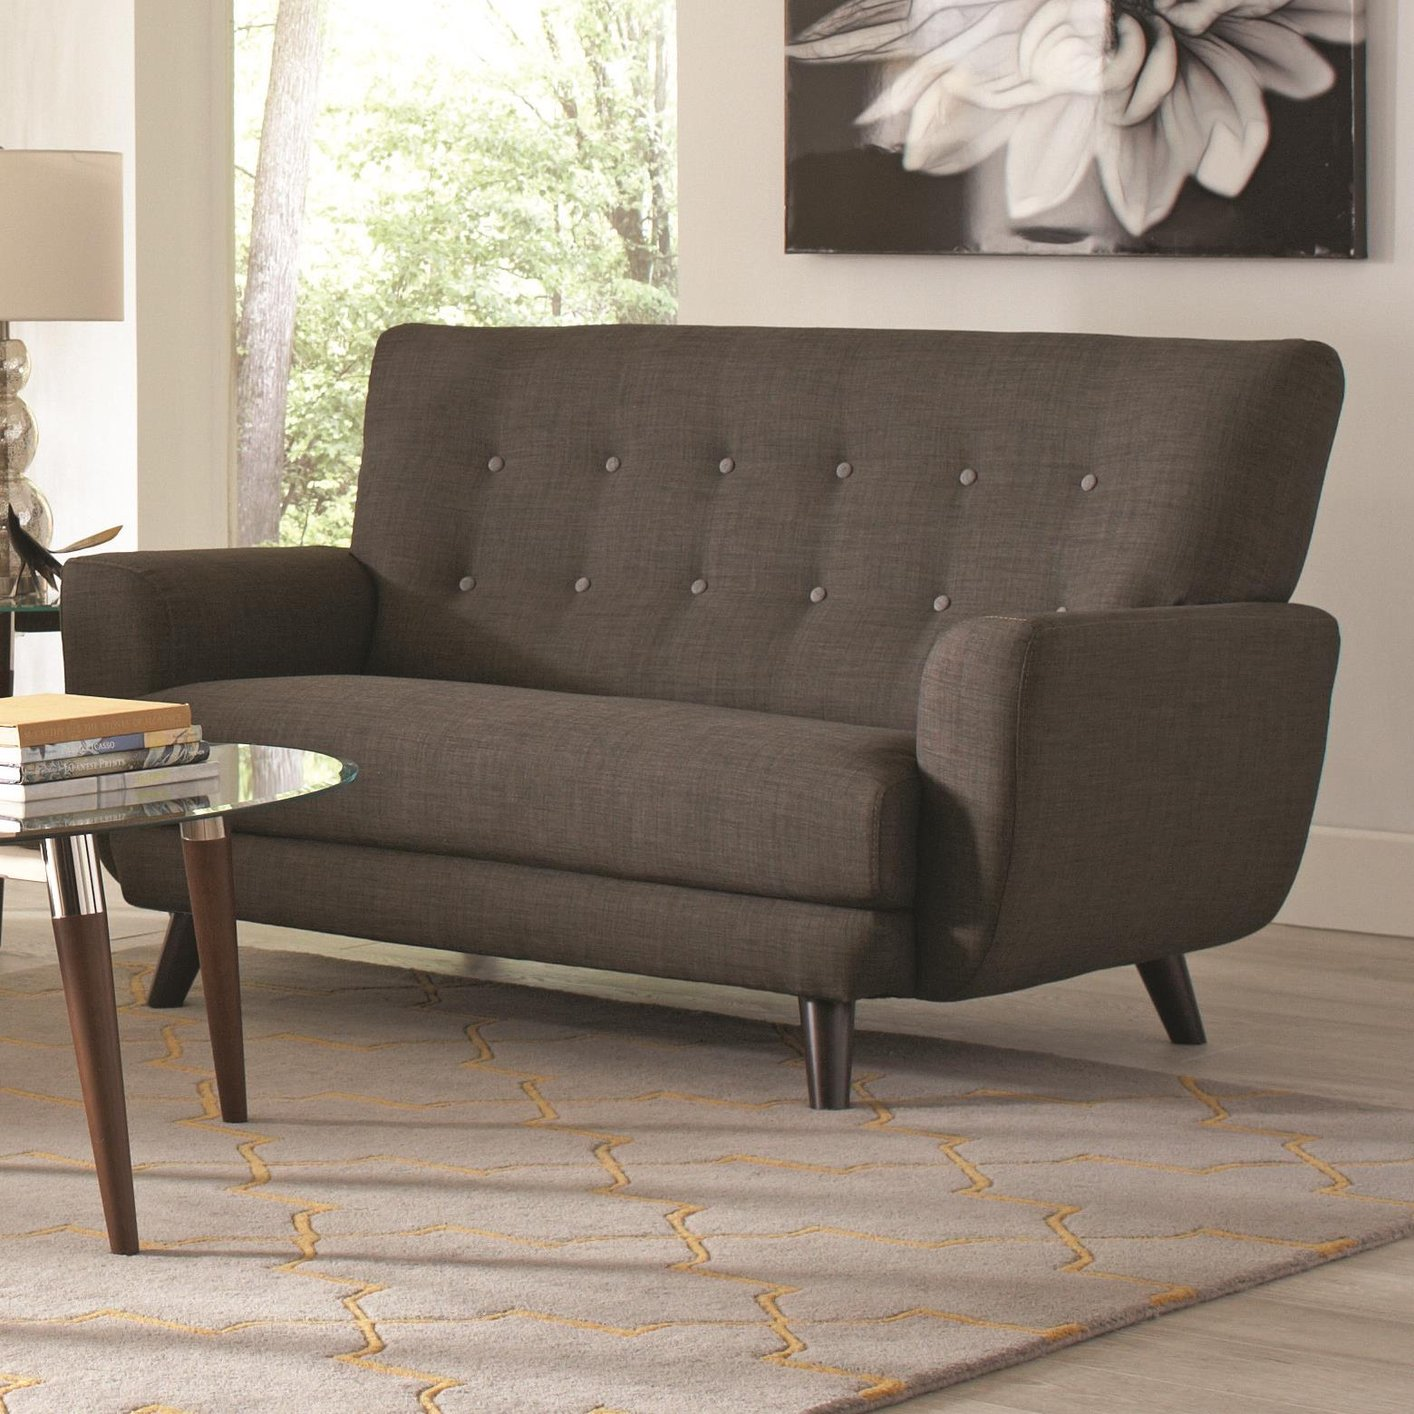 aron set steal yellow furniture fabric sofa outlet and loveseat poundex a